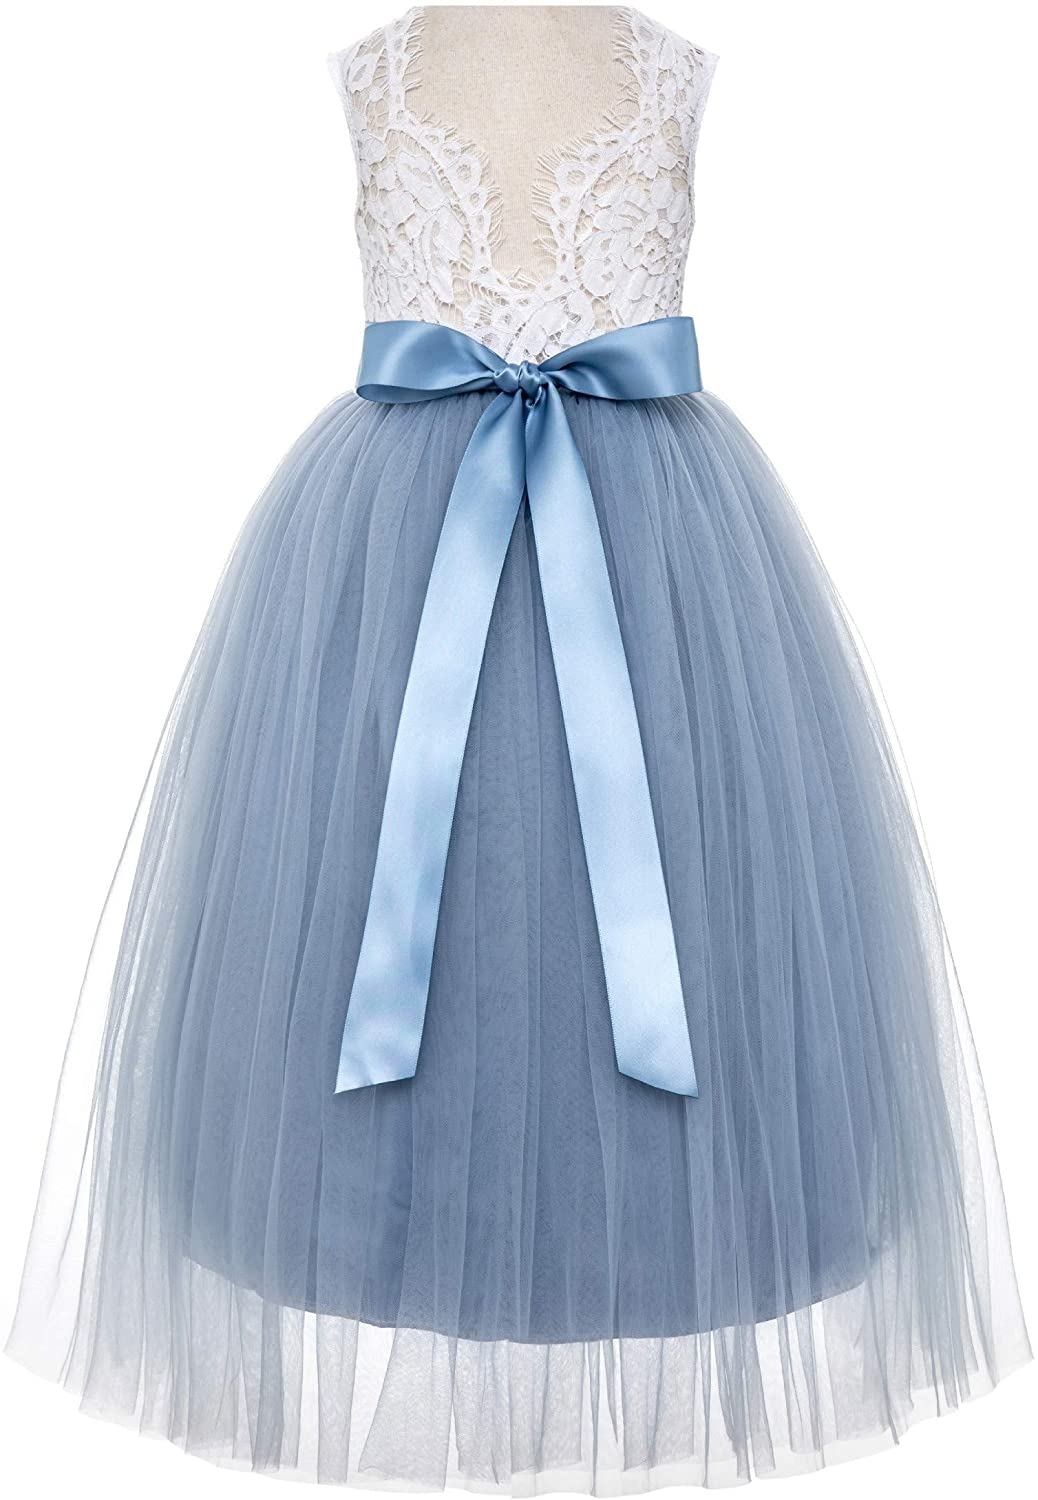 ekidsbridal Scalloped Lace Back Flower Girl Dress Daily Gown Birthday Party Holiday 207R